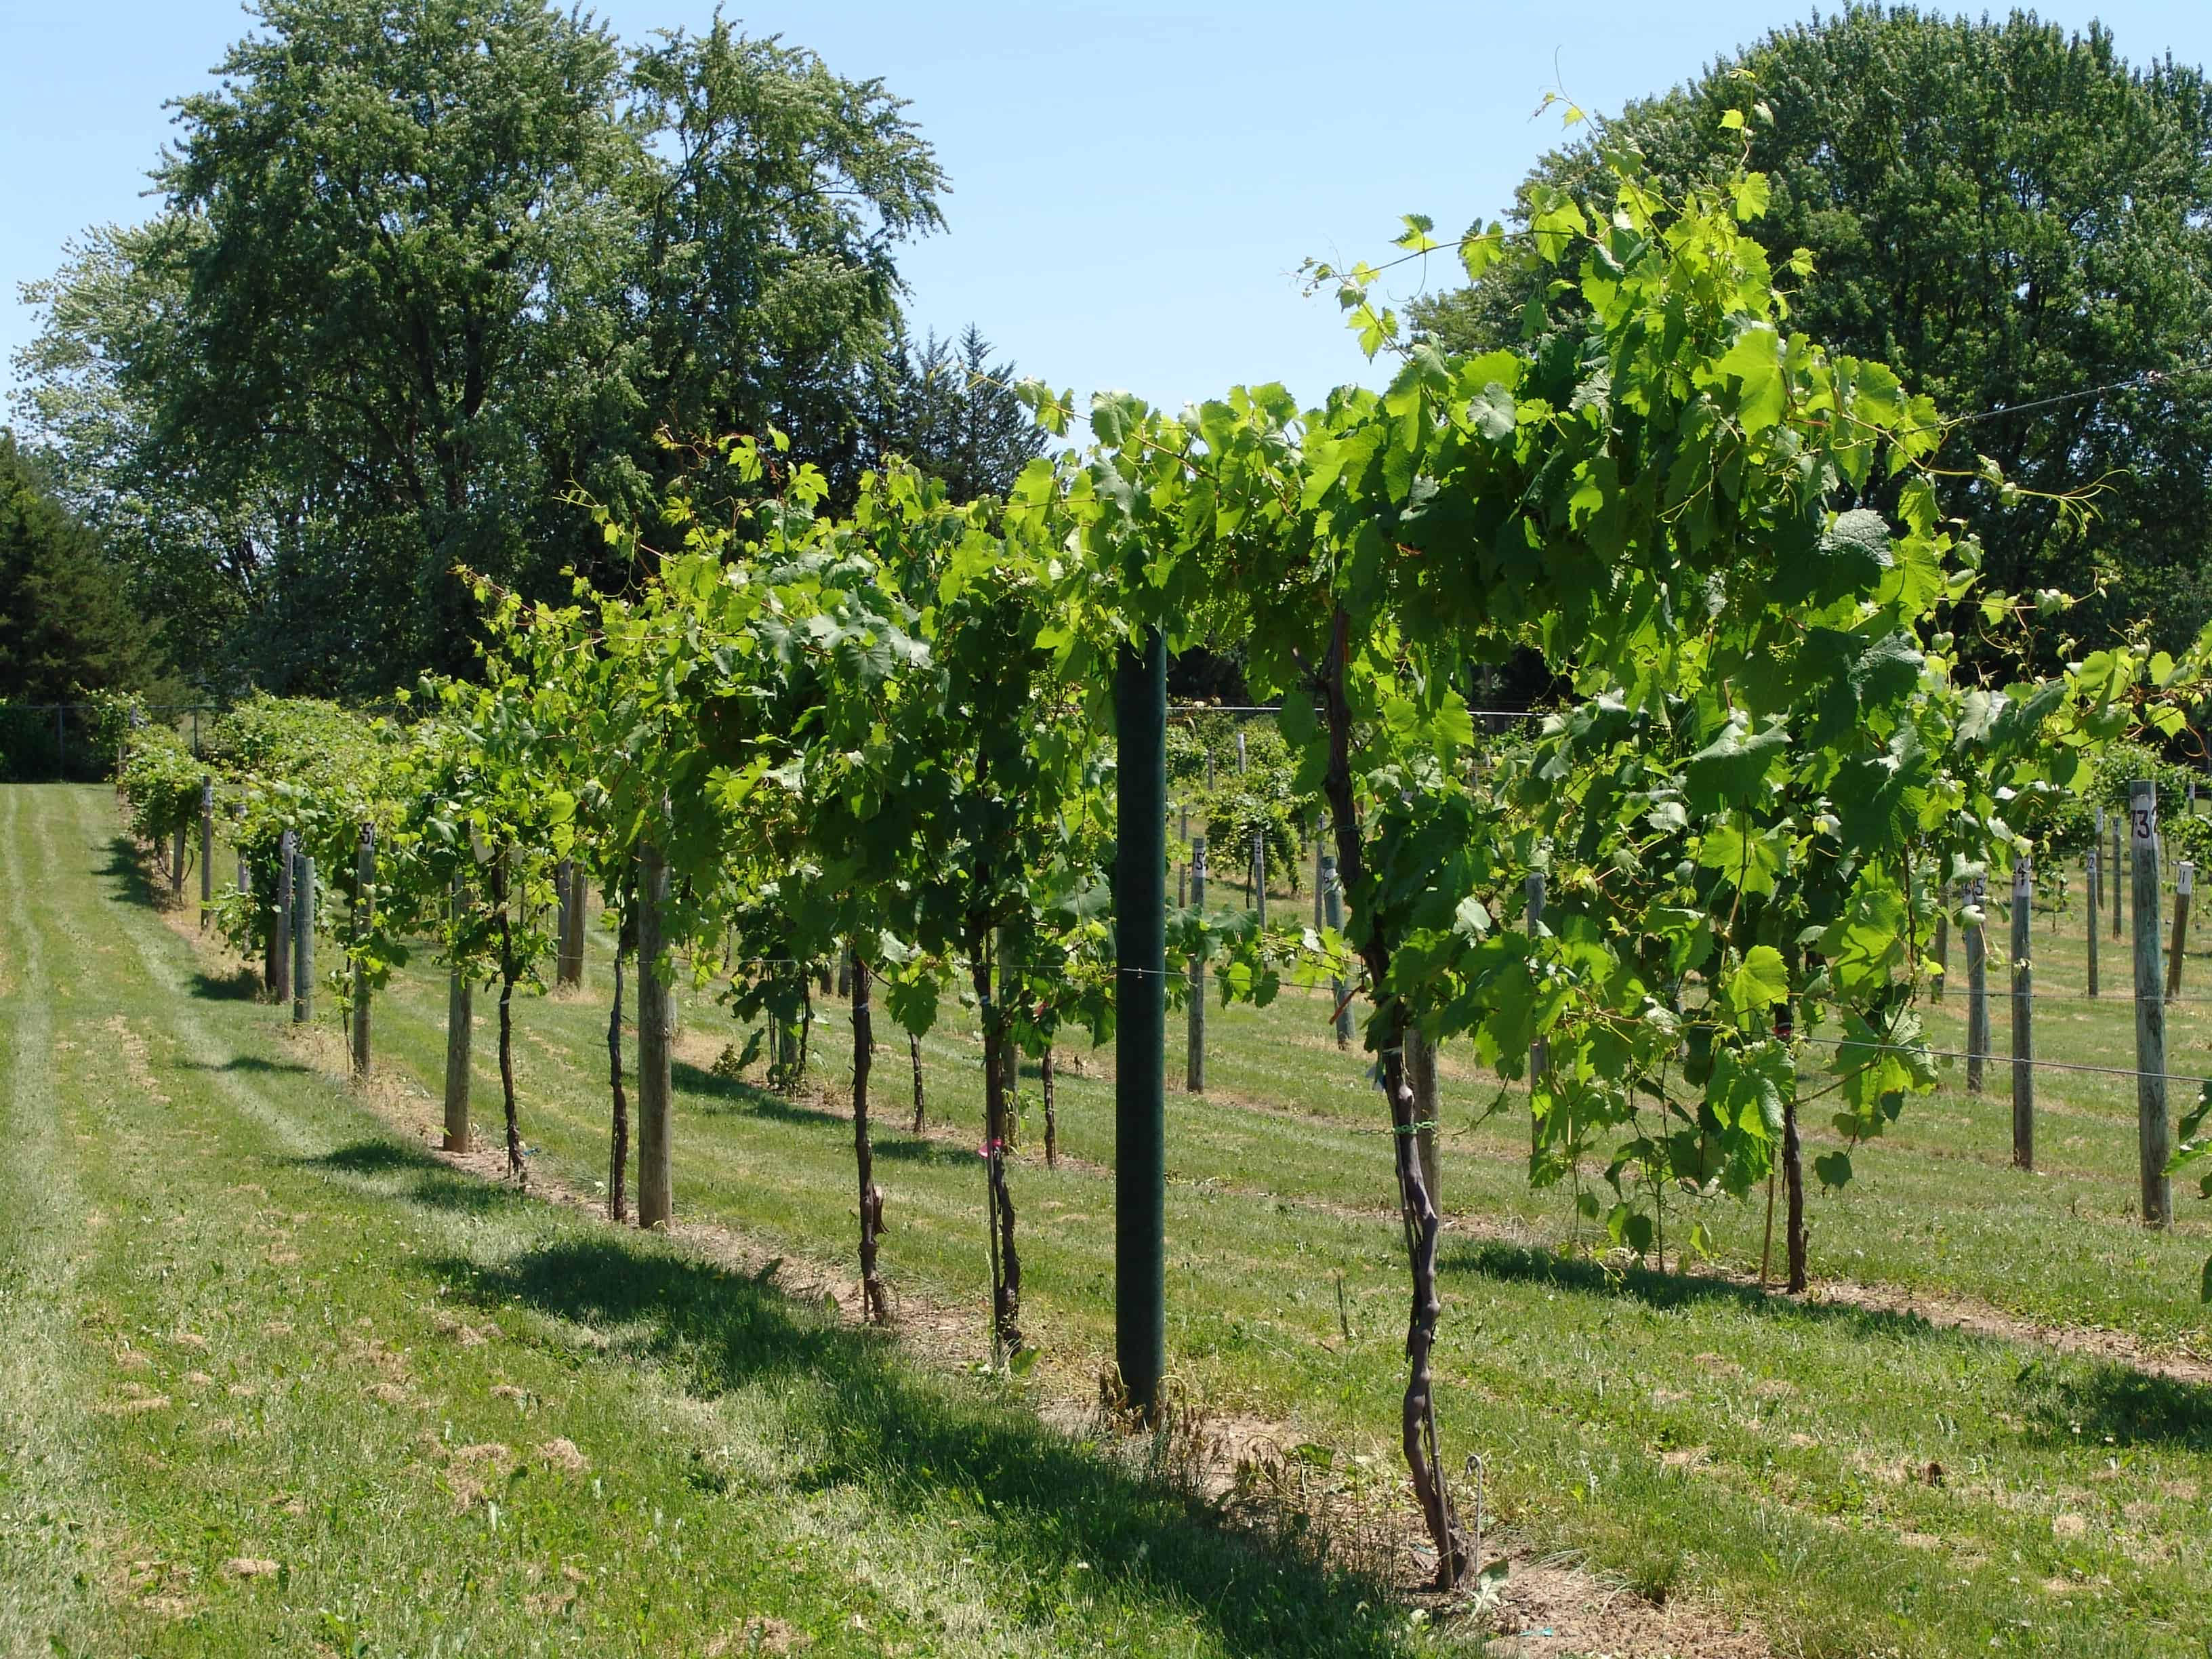 series of recycled plastic vineyard posts